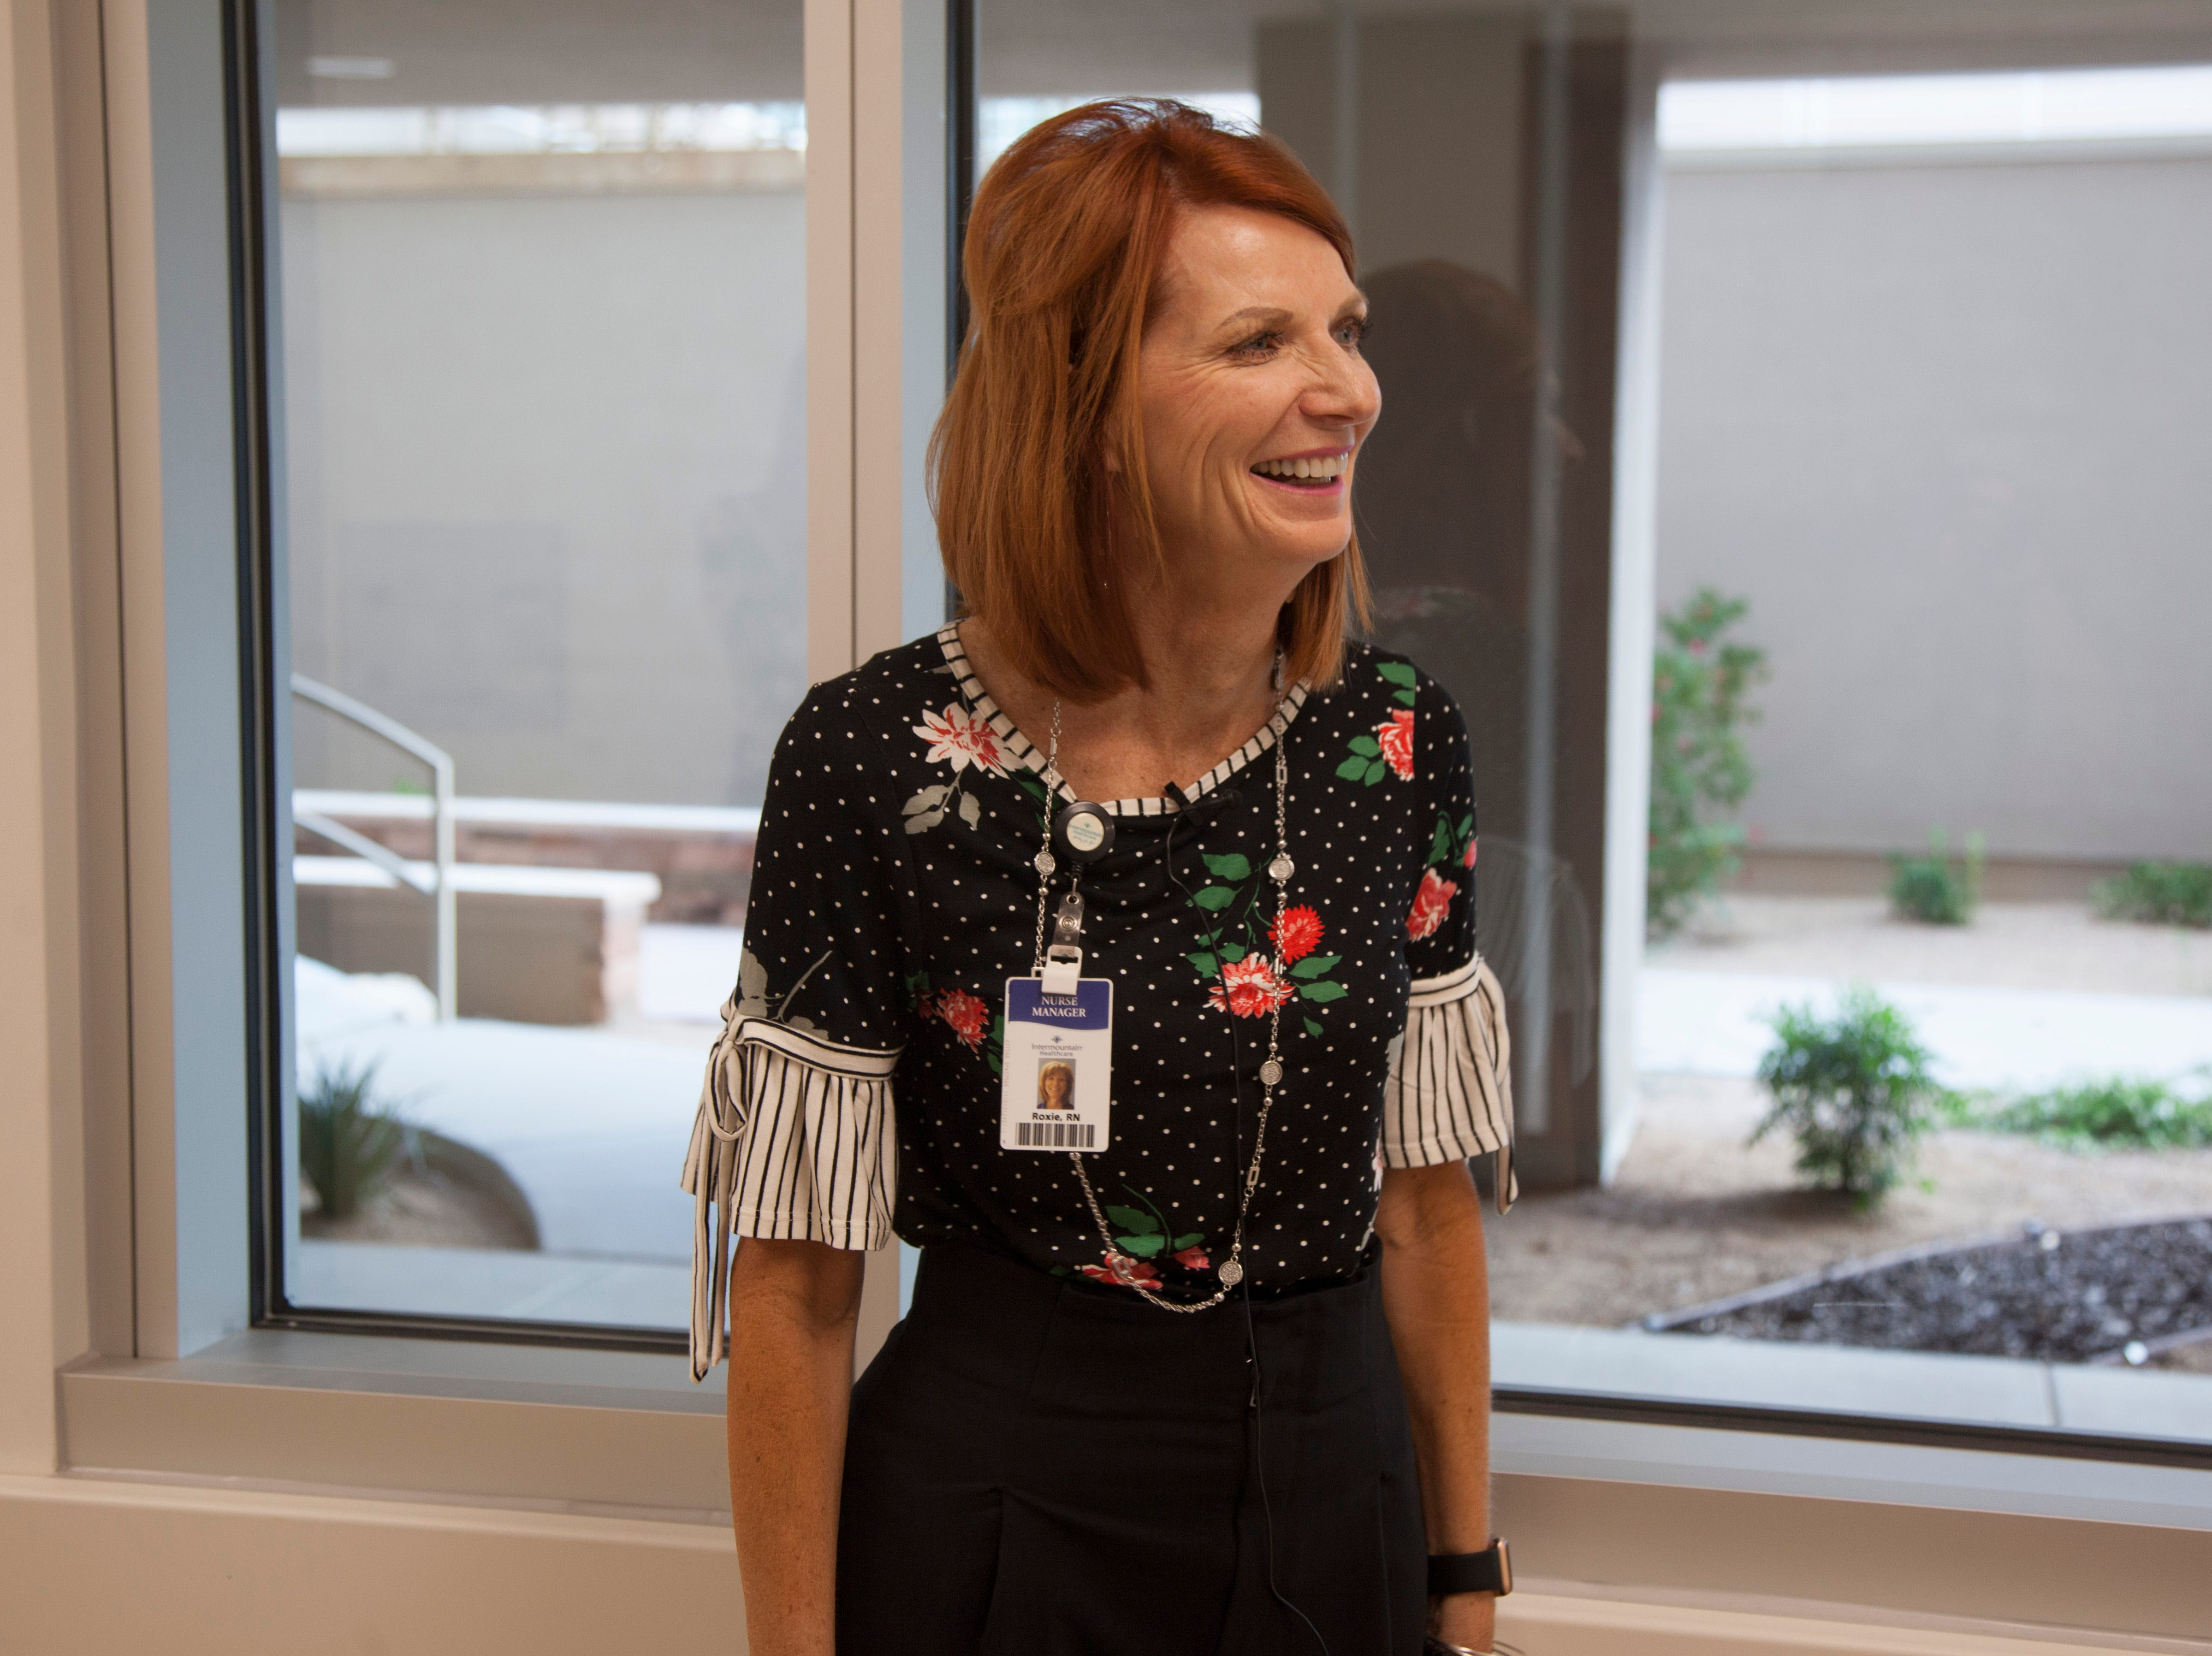 Roxanne Butterfield, Neural Rehabilitation Nurse Manager at IHC, discusses the garden and equipment available to patients Wednesday, Sept. 5, 2018.